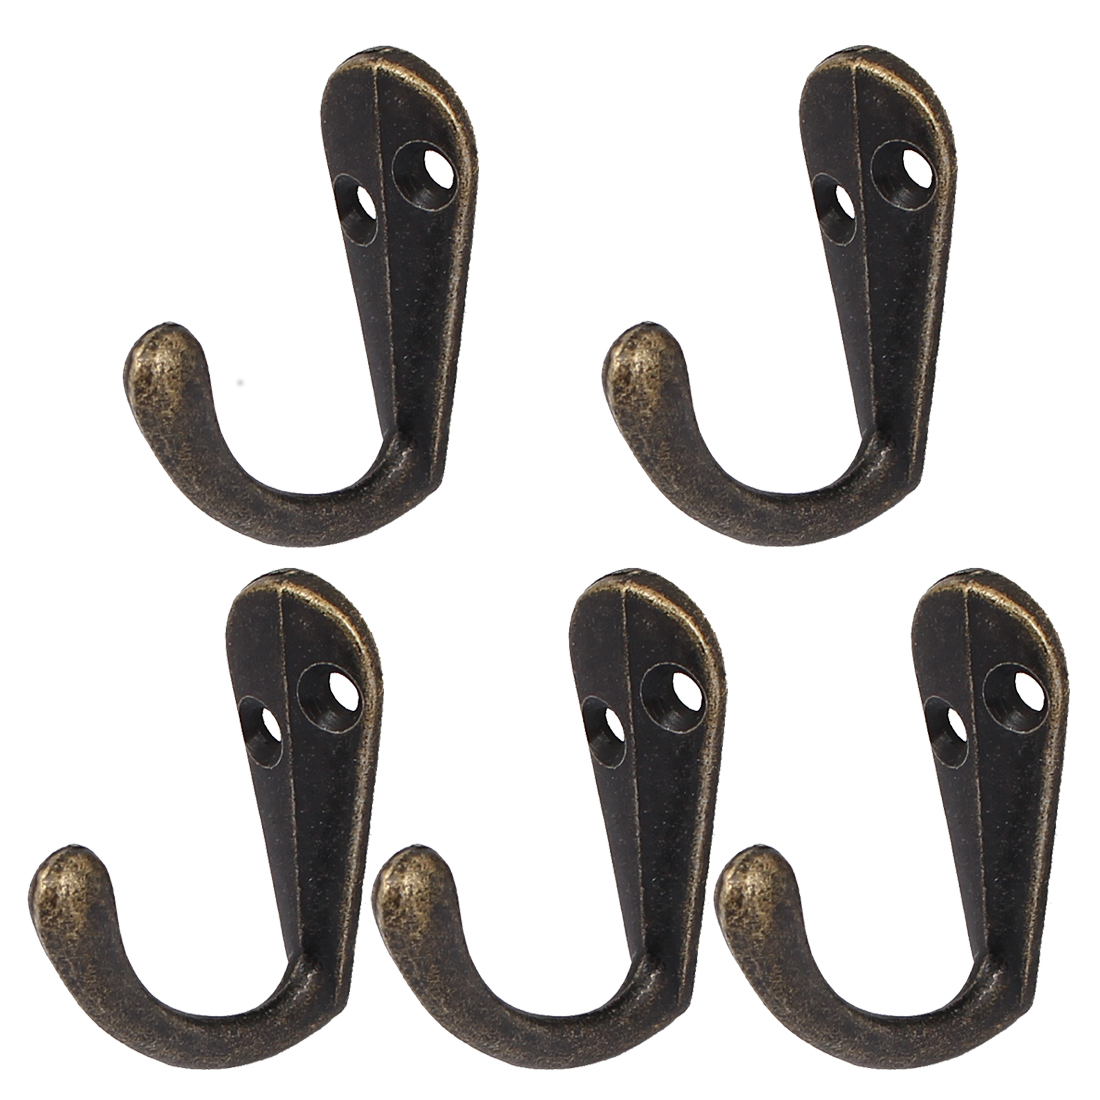 Bedroom 34mm Long Clothes Hat Towel Hanging Wall Mounted Single Hook Hanger 5pcs